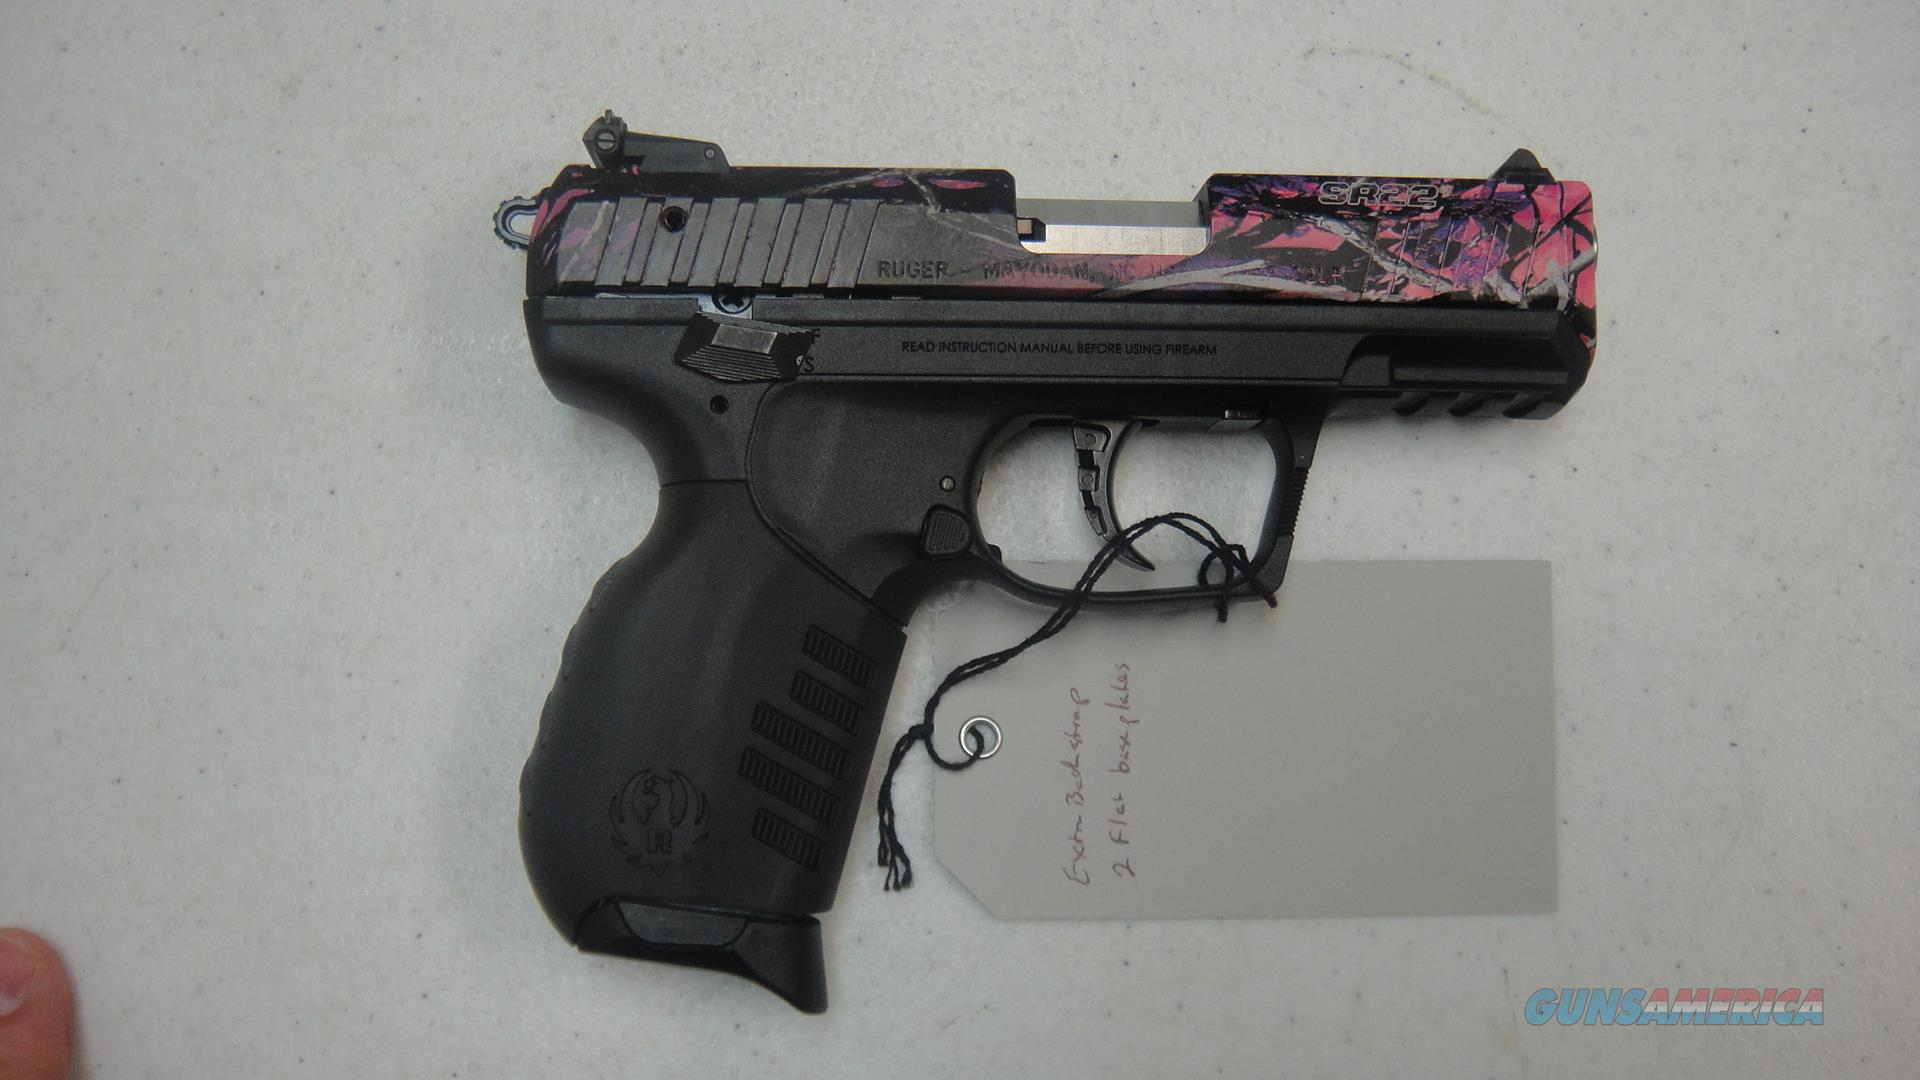 Ruger SR22 w/ Muddy Girl finish  Guns > Pistols > Ruger Semi-Auto Pistols > SR Family > SR22